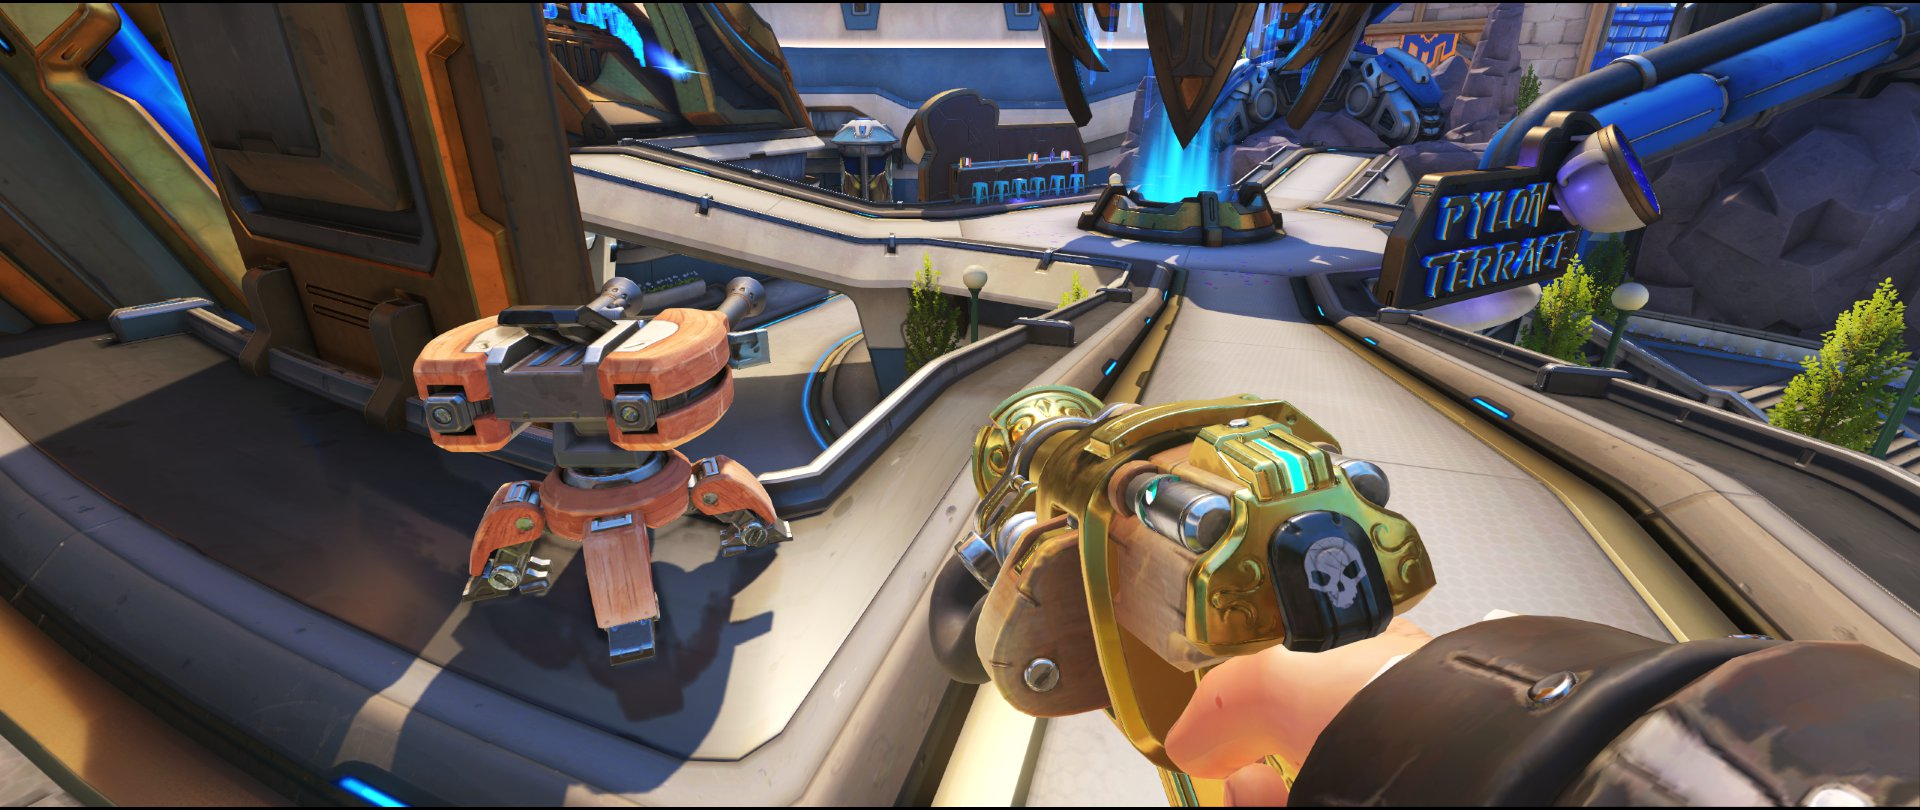 Center+and+main+yellow+panels+turret+placement+spot+Torbjorn+Blizzard+World+Overwatch